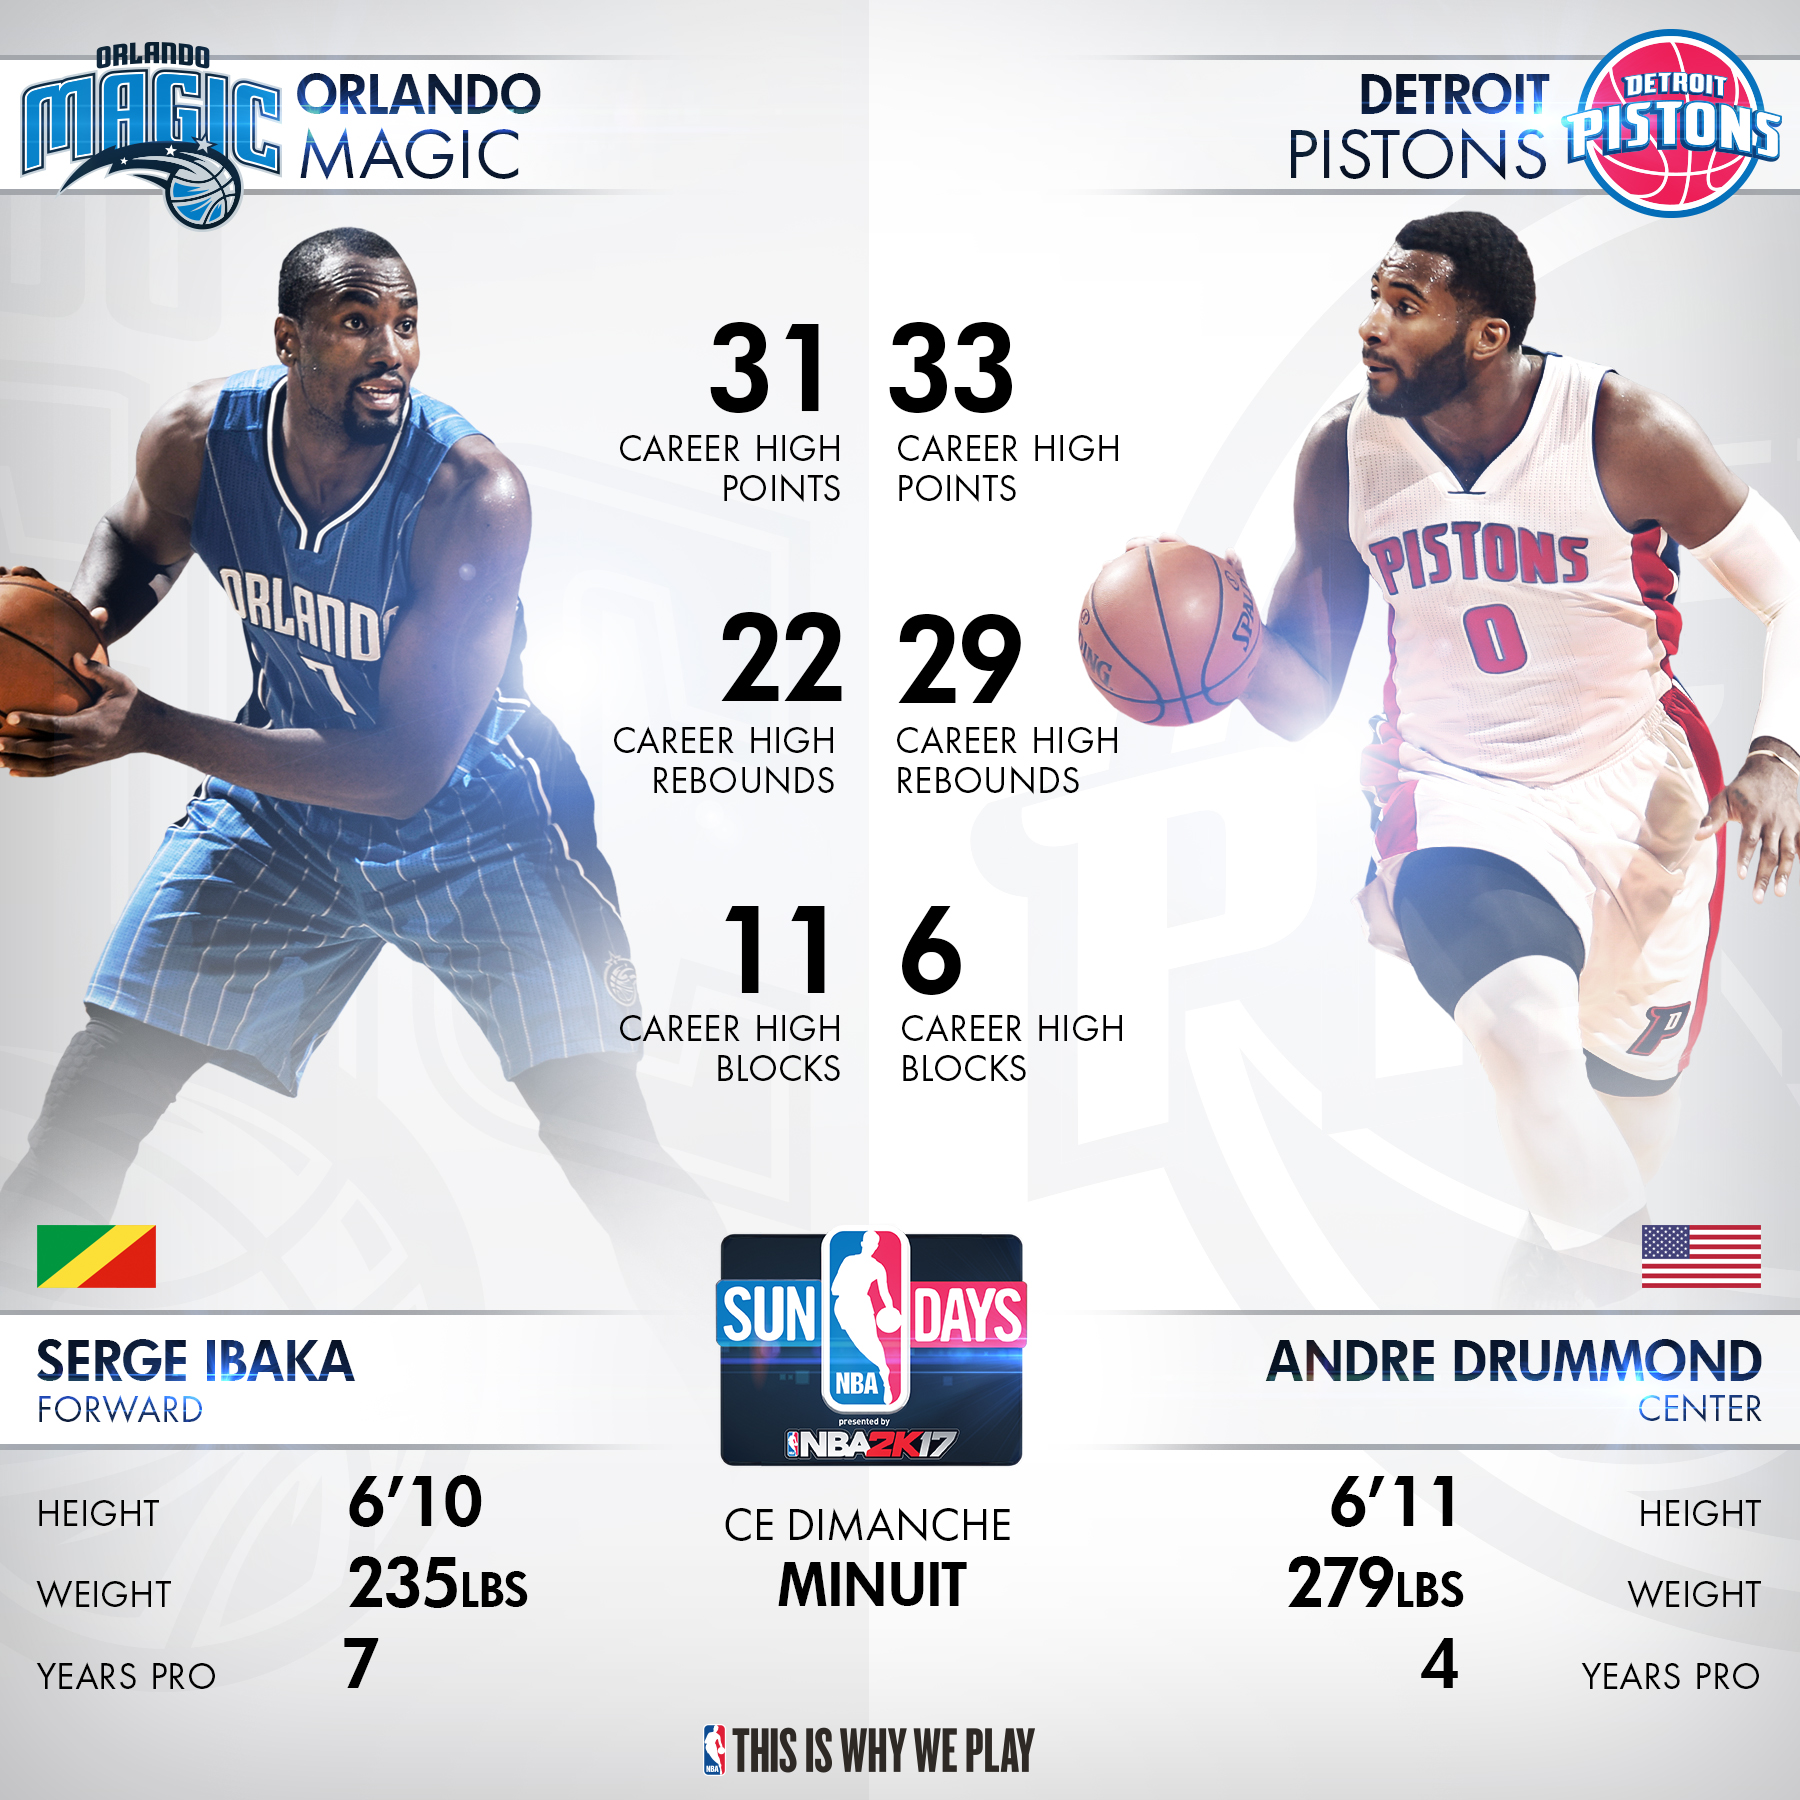 NBA Sunday – Magic vs. Pistons pour une grosse baston